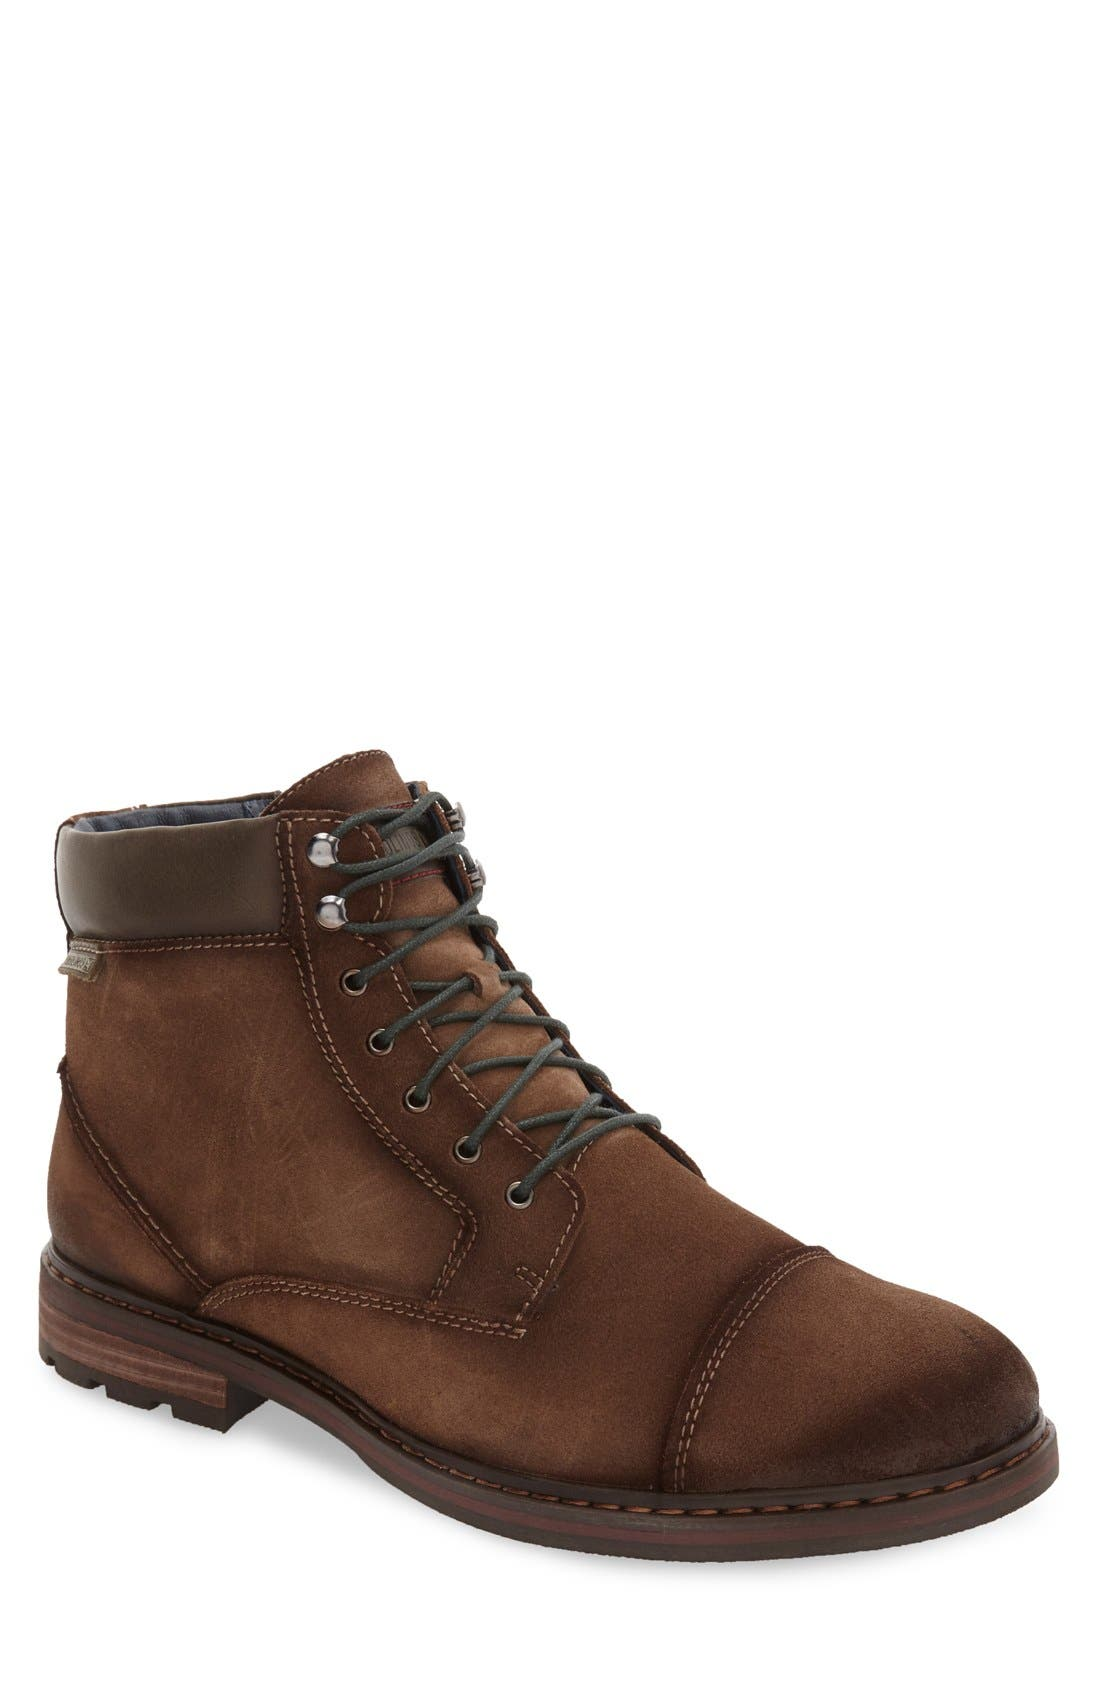 'Cacers' Lace-Up Zip Boot,                         Main,                         color, Brown Leather